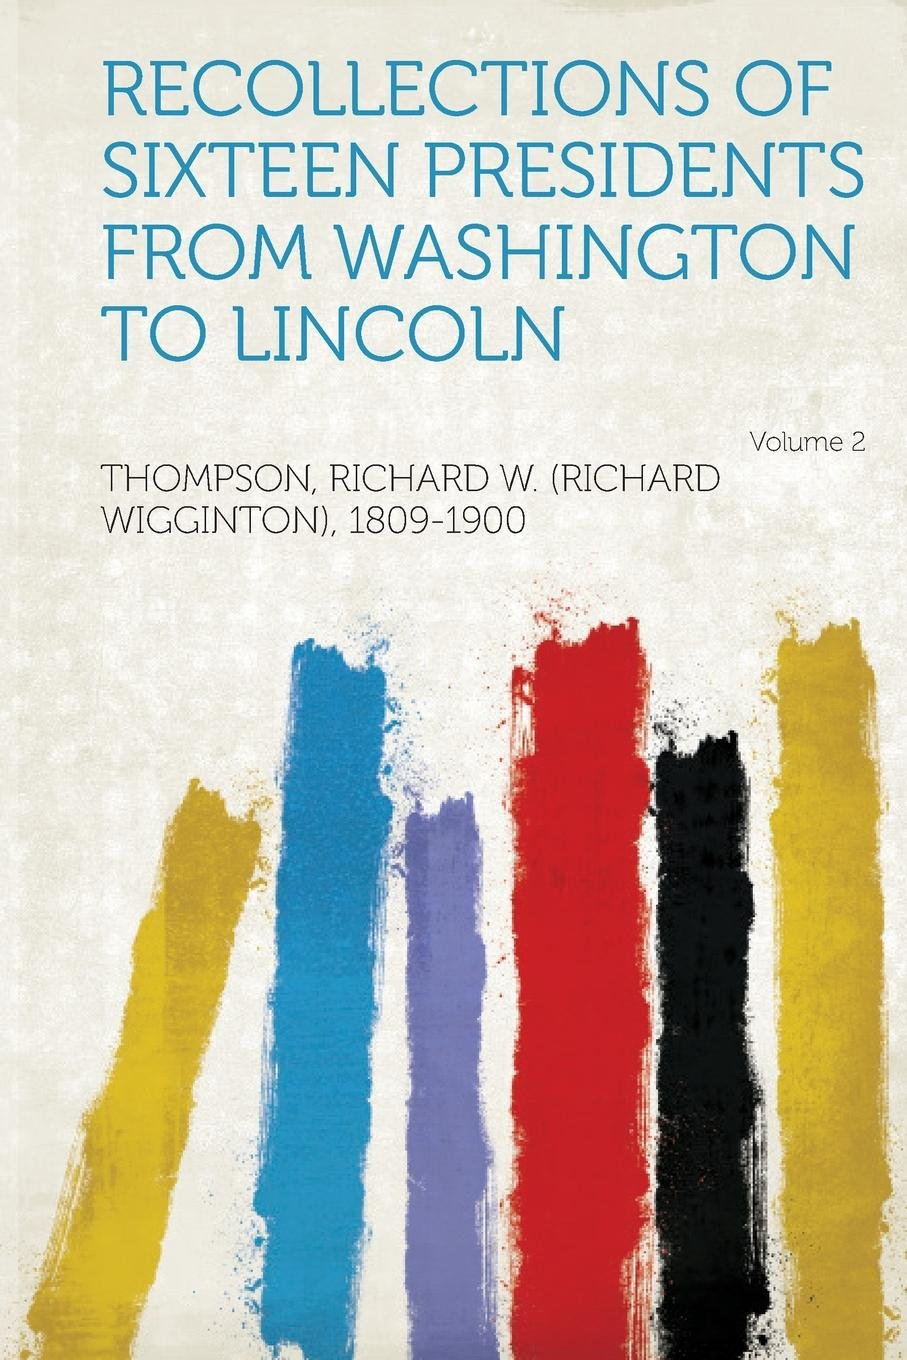 Download Recollections of Sixteen Presidents from Washington to Lincoln Volume 2 pdf